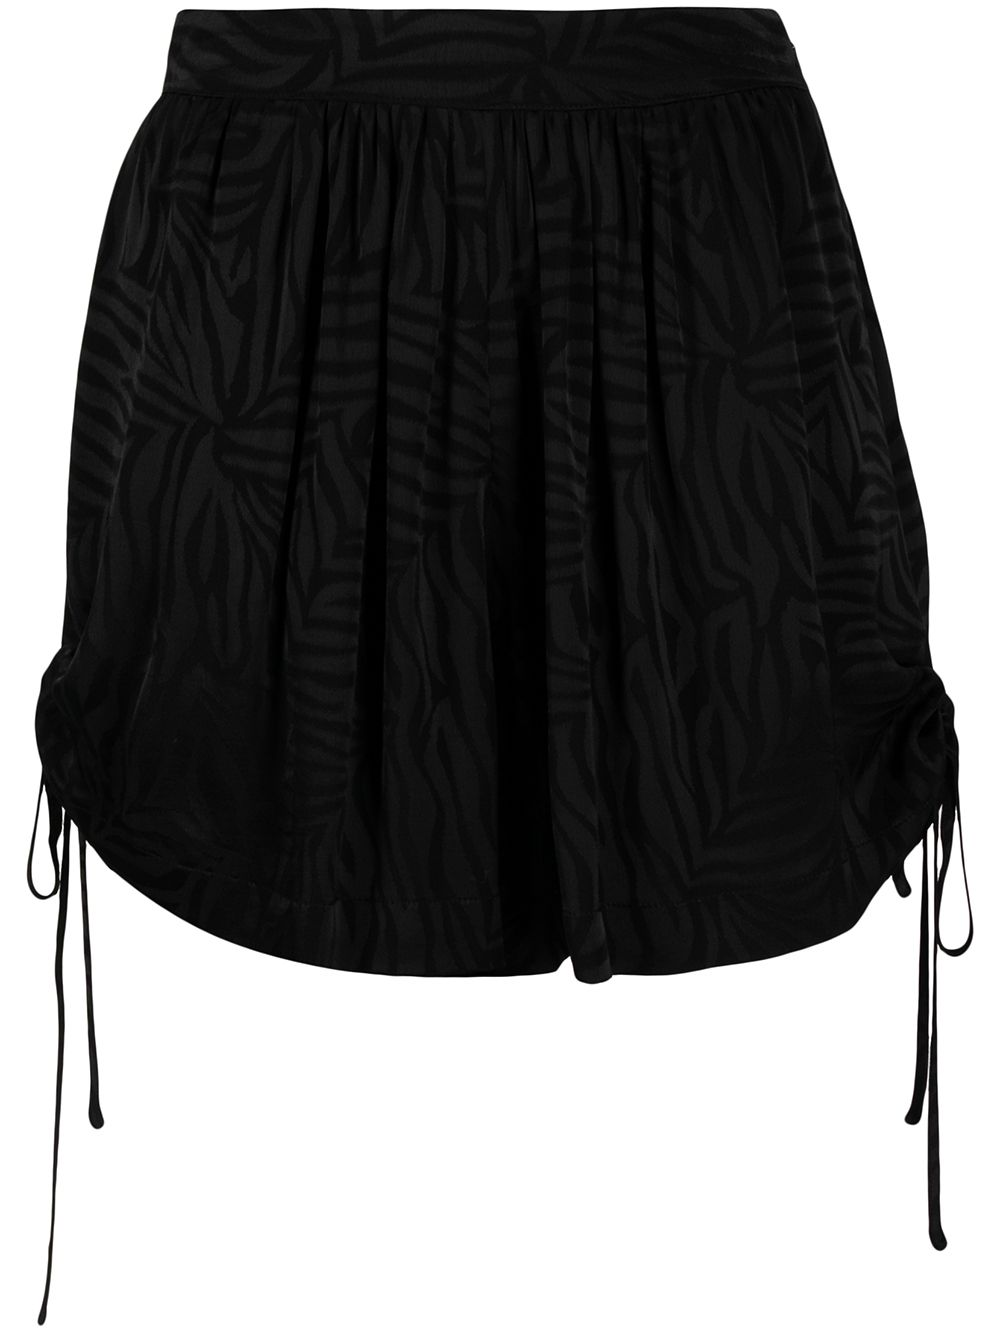 Shorts con stampa FEDERICA TOSI   Shorts   FTE21SH085.0RA00560002